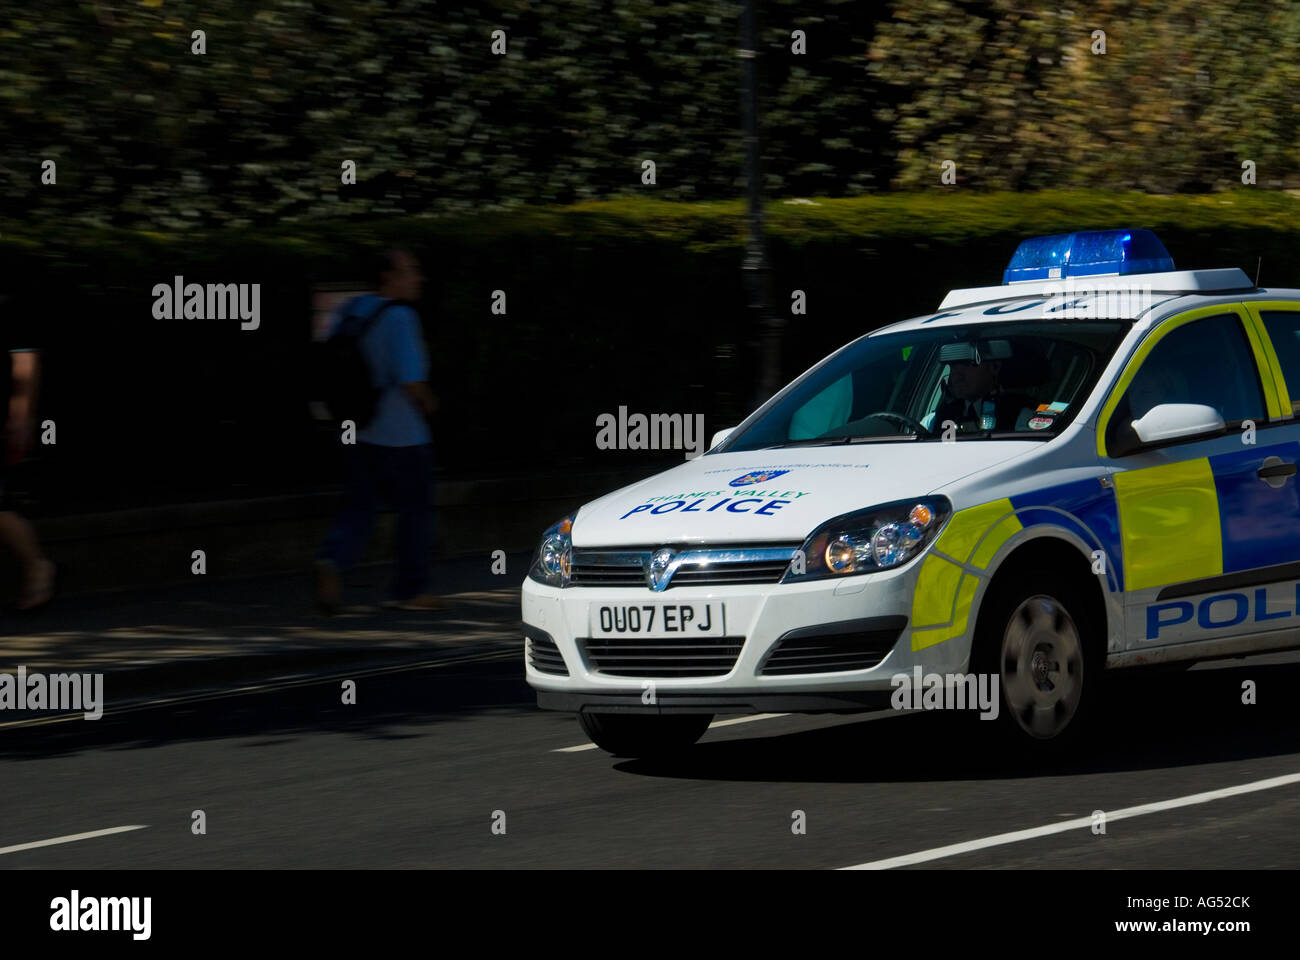 A Thames Valley Police Vehicle responding to an Emergency with Blue Light within the University City of Oxford - Stock Image